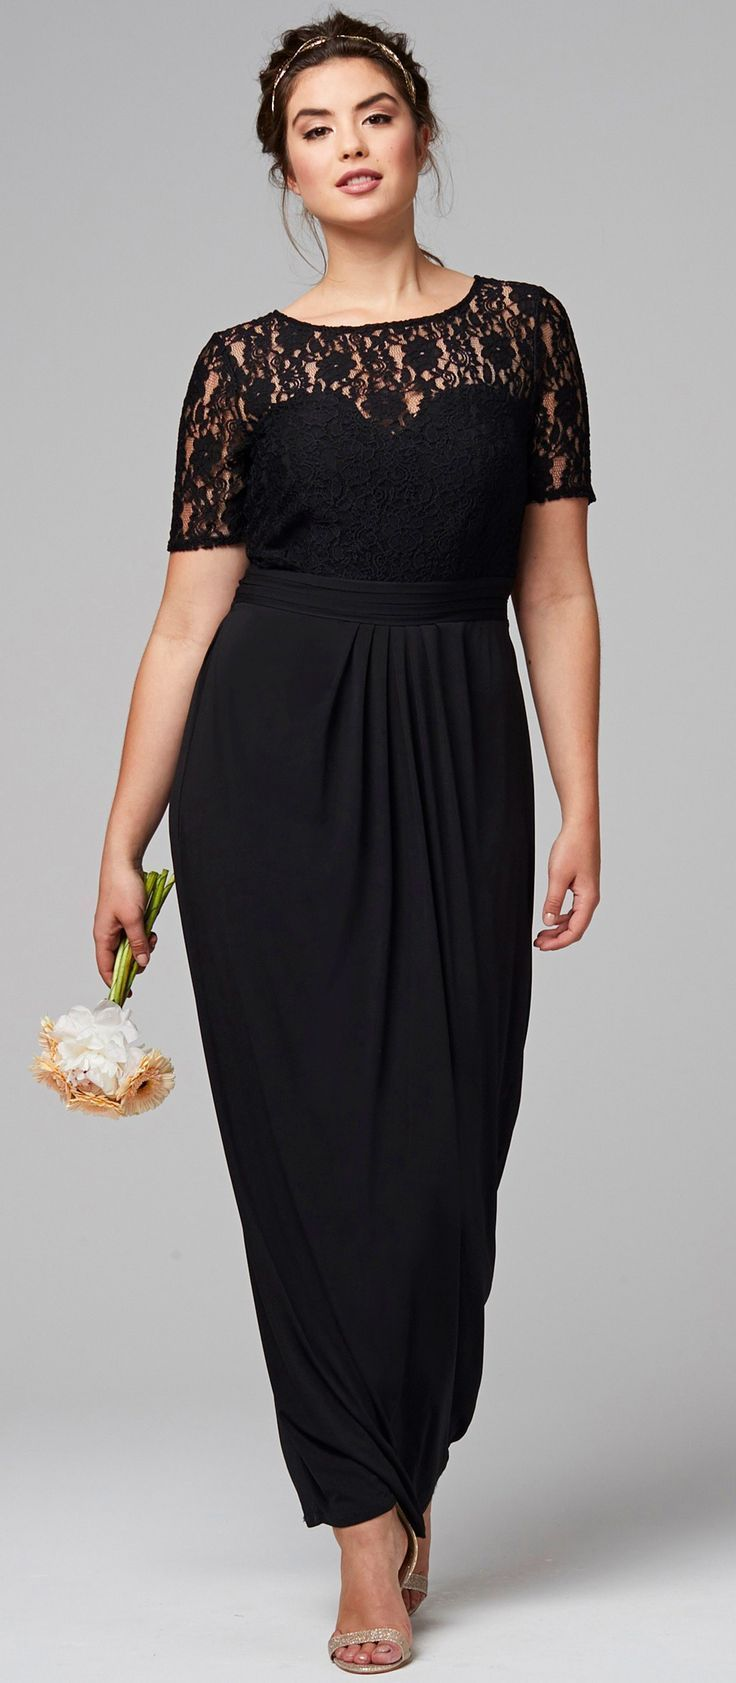 62d56353e7b 45 Plus Size Wedding Guest Dresses  with Sleeves  - Plus Size Cocktail  Dresses - alexawebb.com